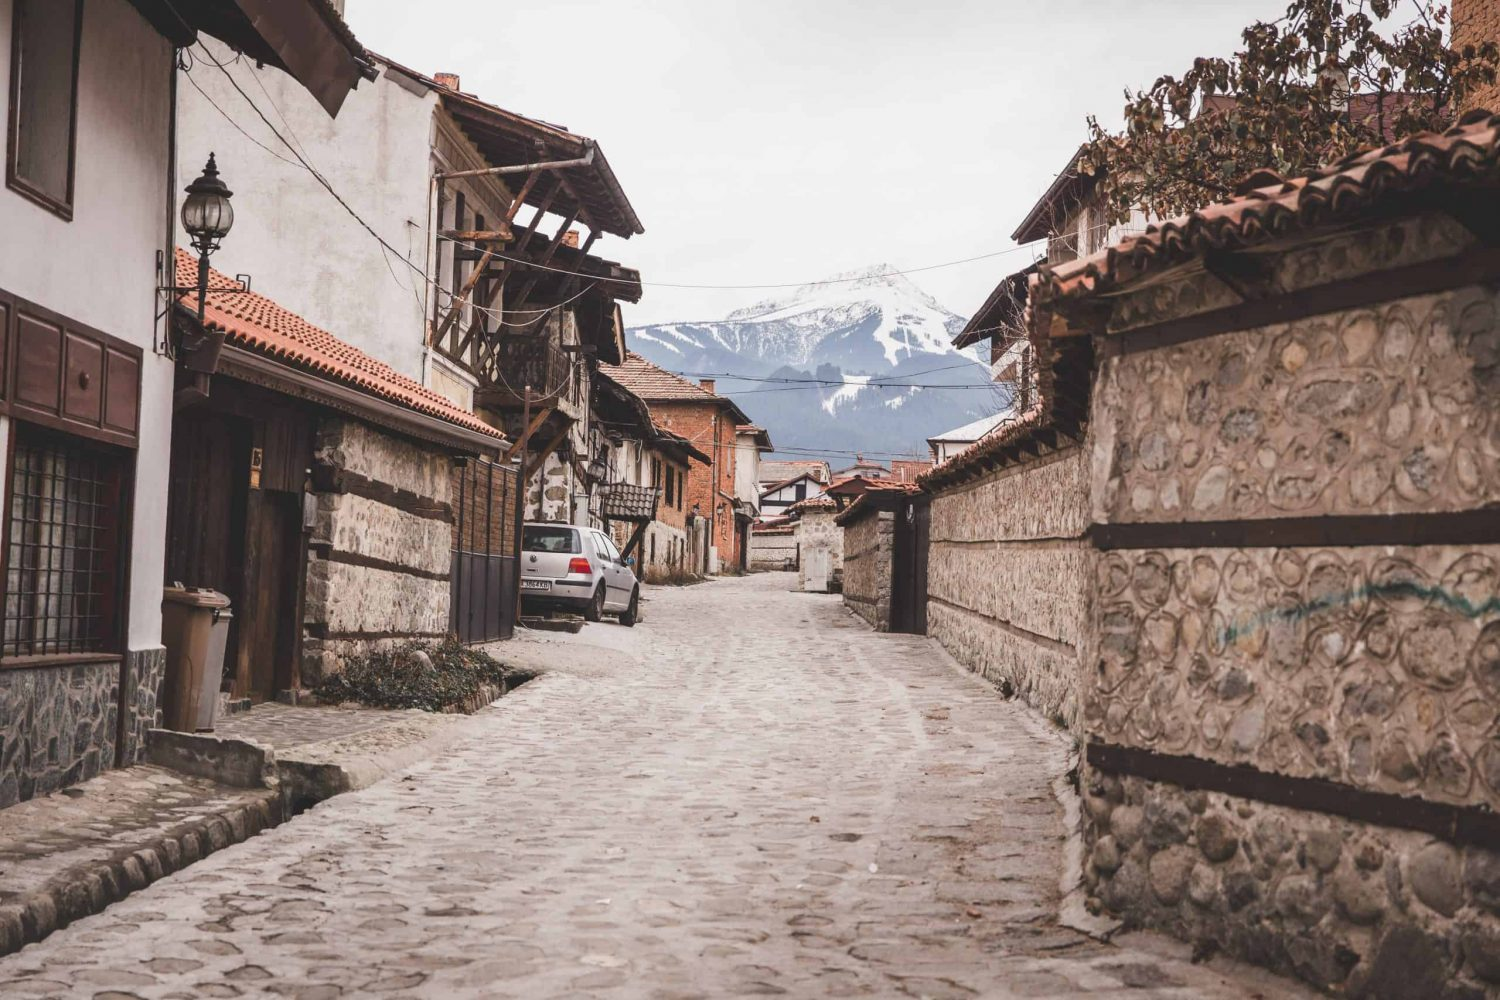 A cobblestone street with stone walls and houses with a view of snow covered mountains in Bansko, Bulgaria's Old Town.